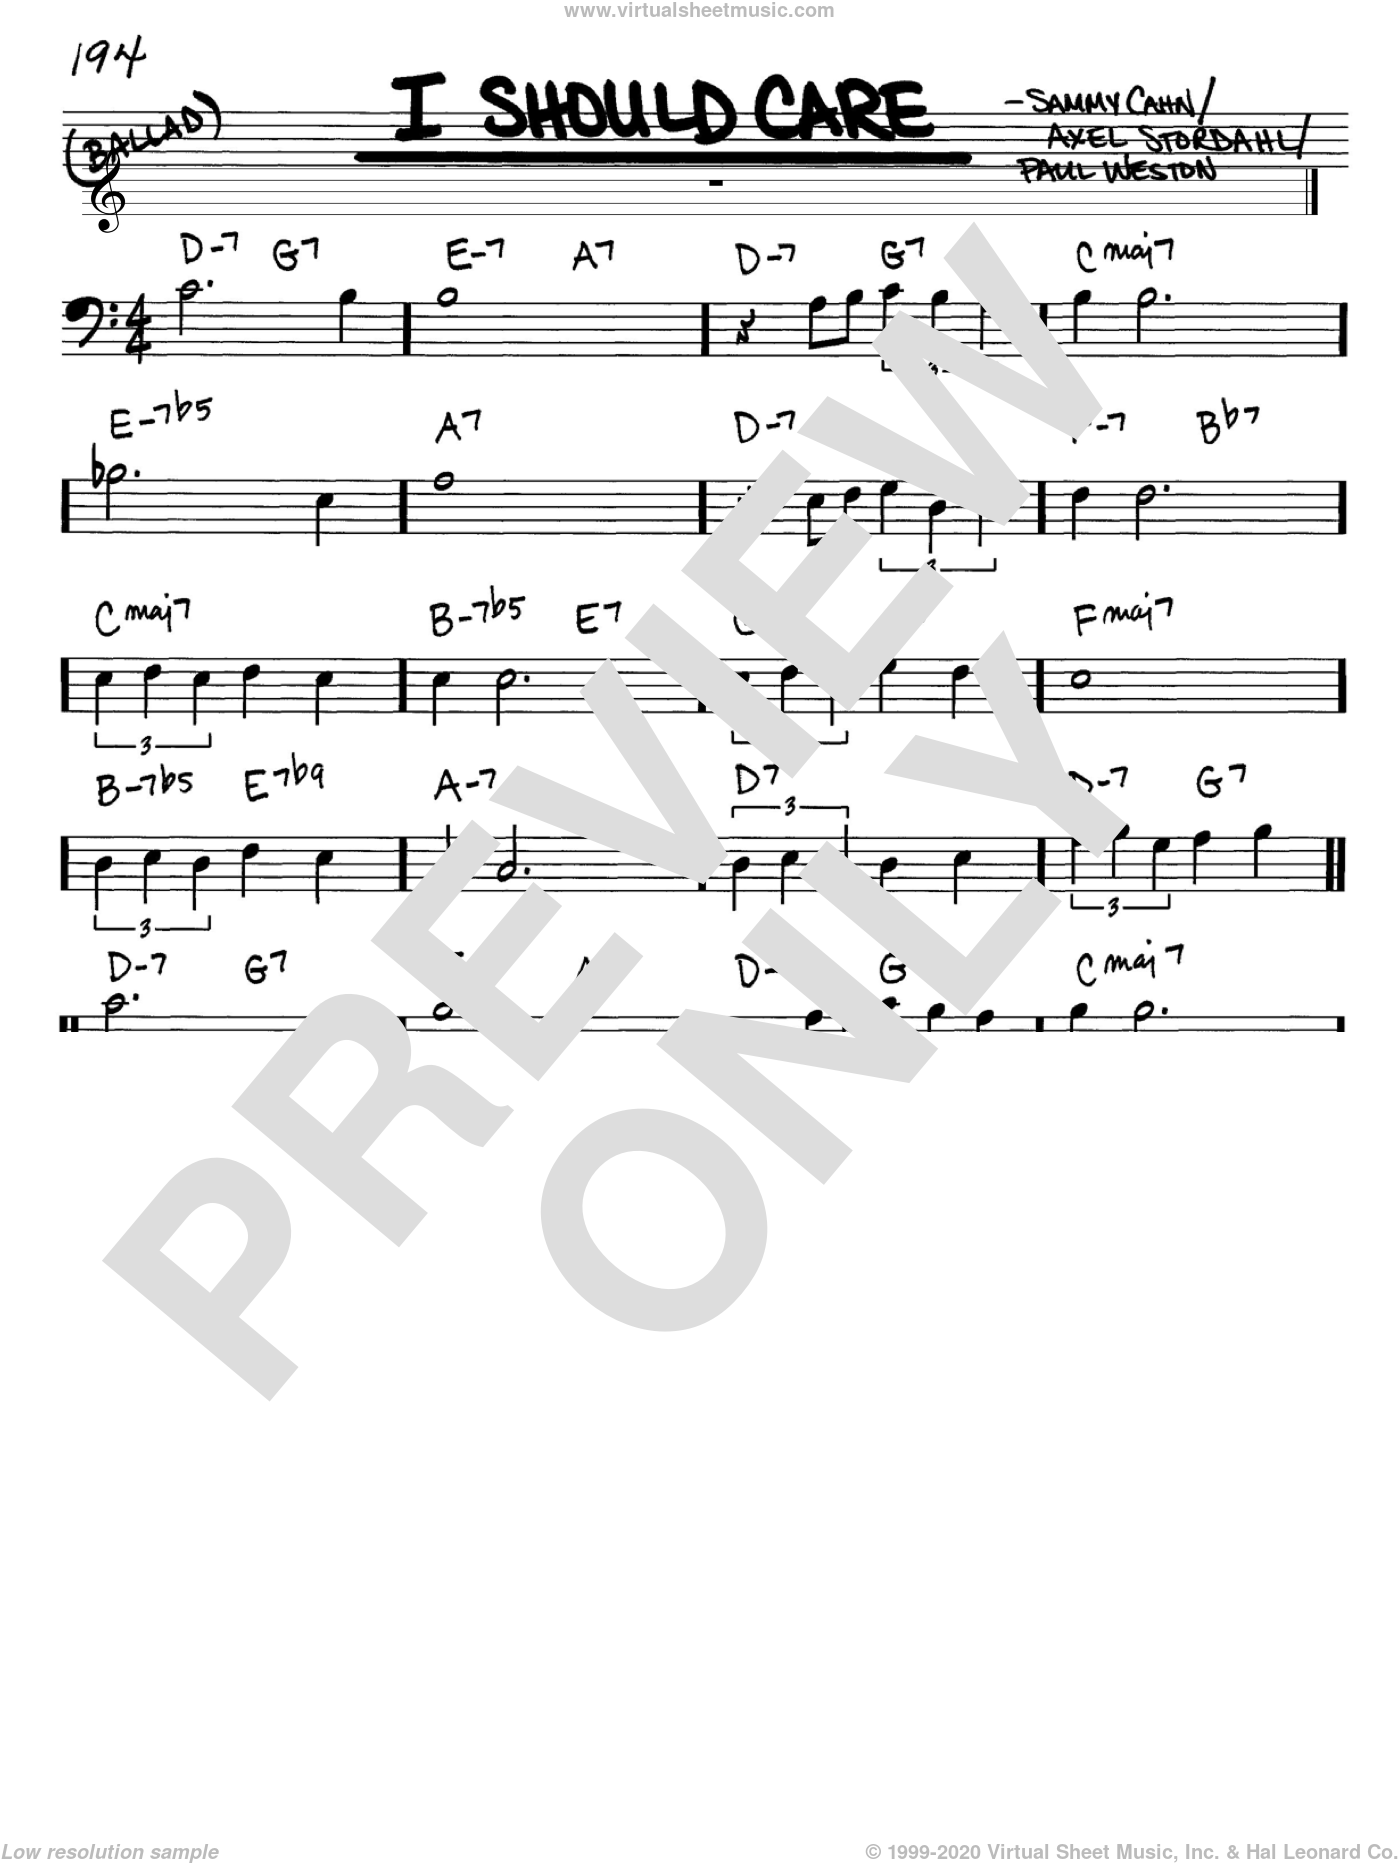 I Should Care sheet music for voice and other instruments (Bass Clef ) by Paul Weston